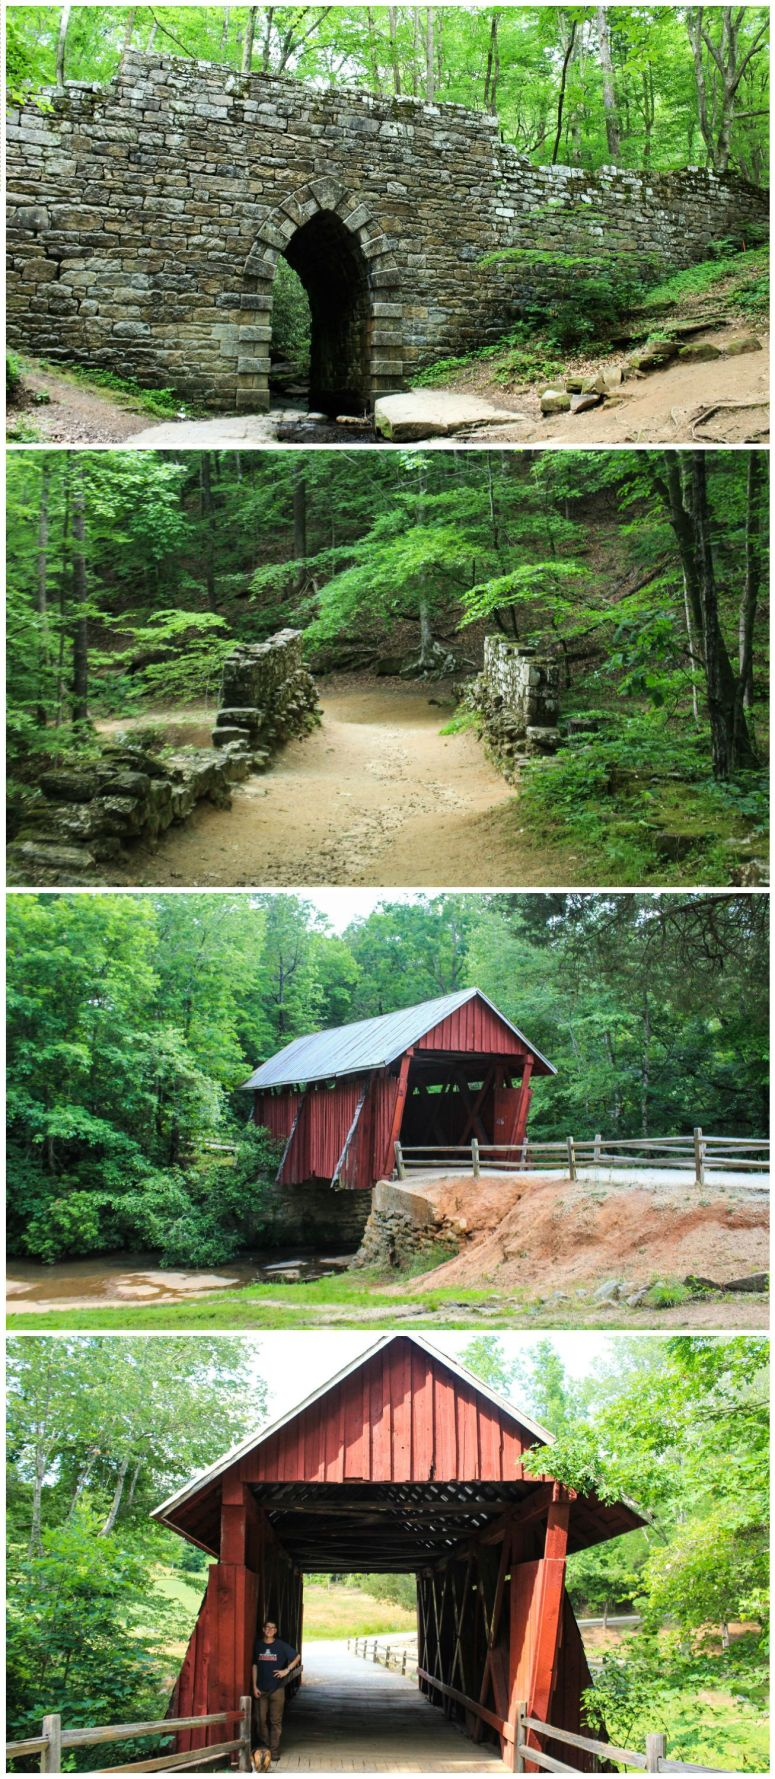 poinsett bridge and campbells covered bridge greenville south carolina